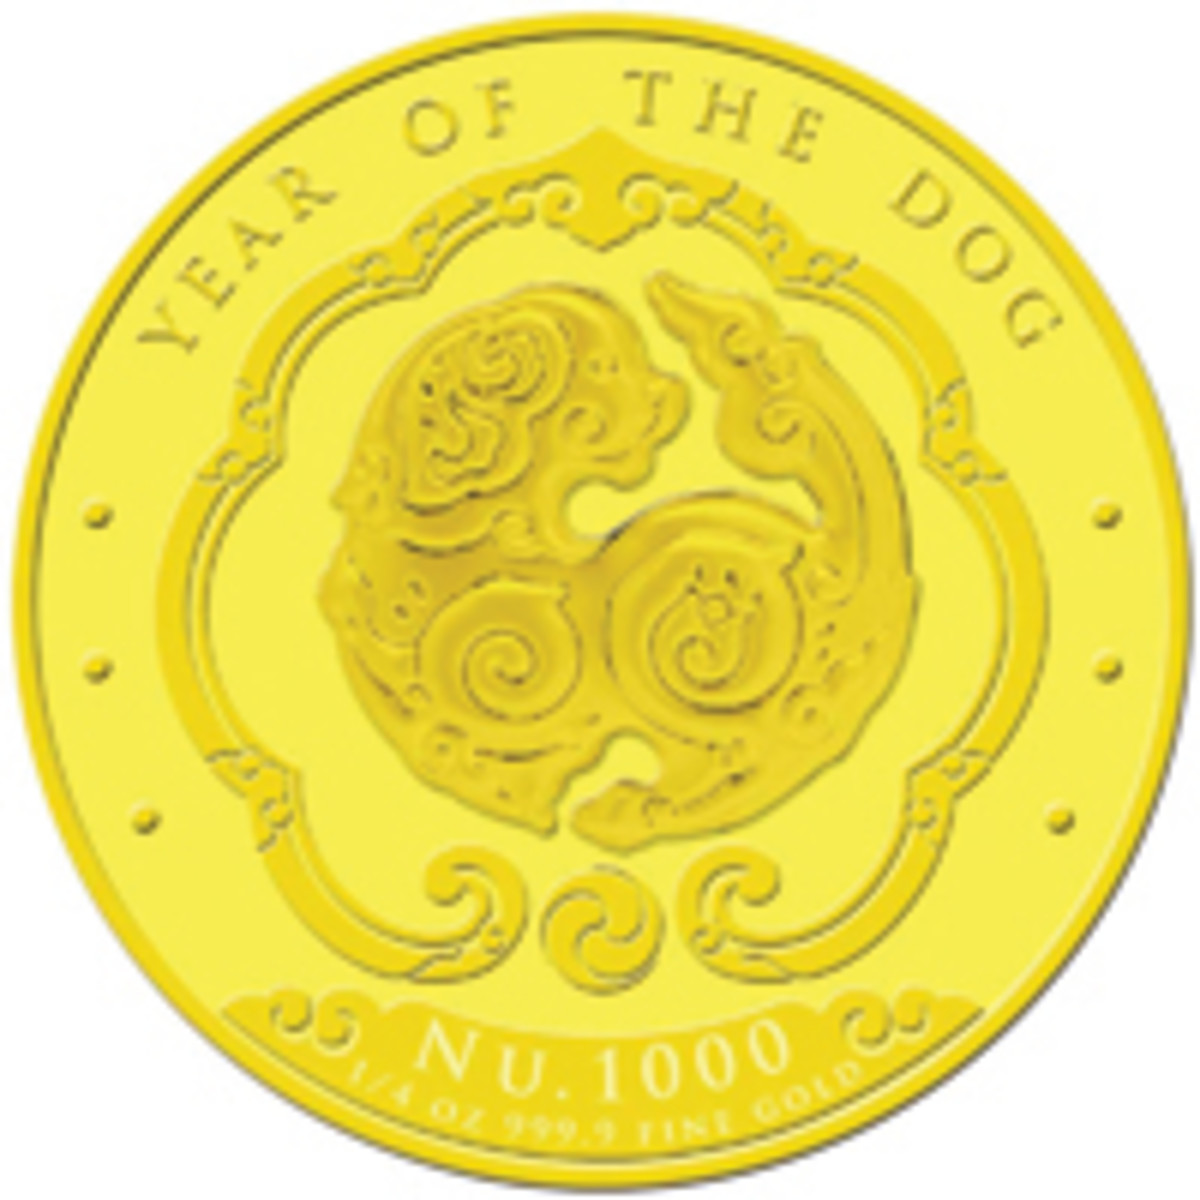 Reverse of Bhutan's third lunar gold 1,000 ngultrum. (Image courtesy Singapore Mint)